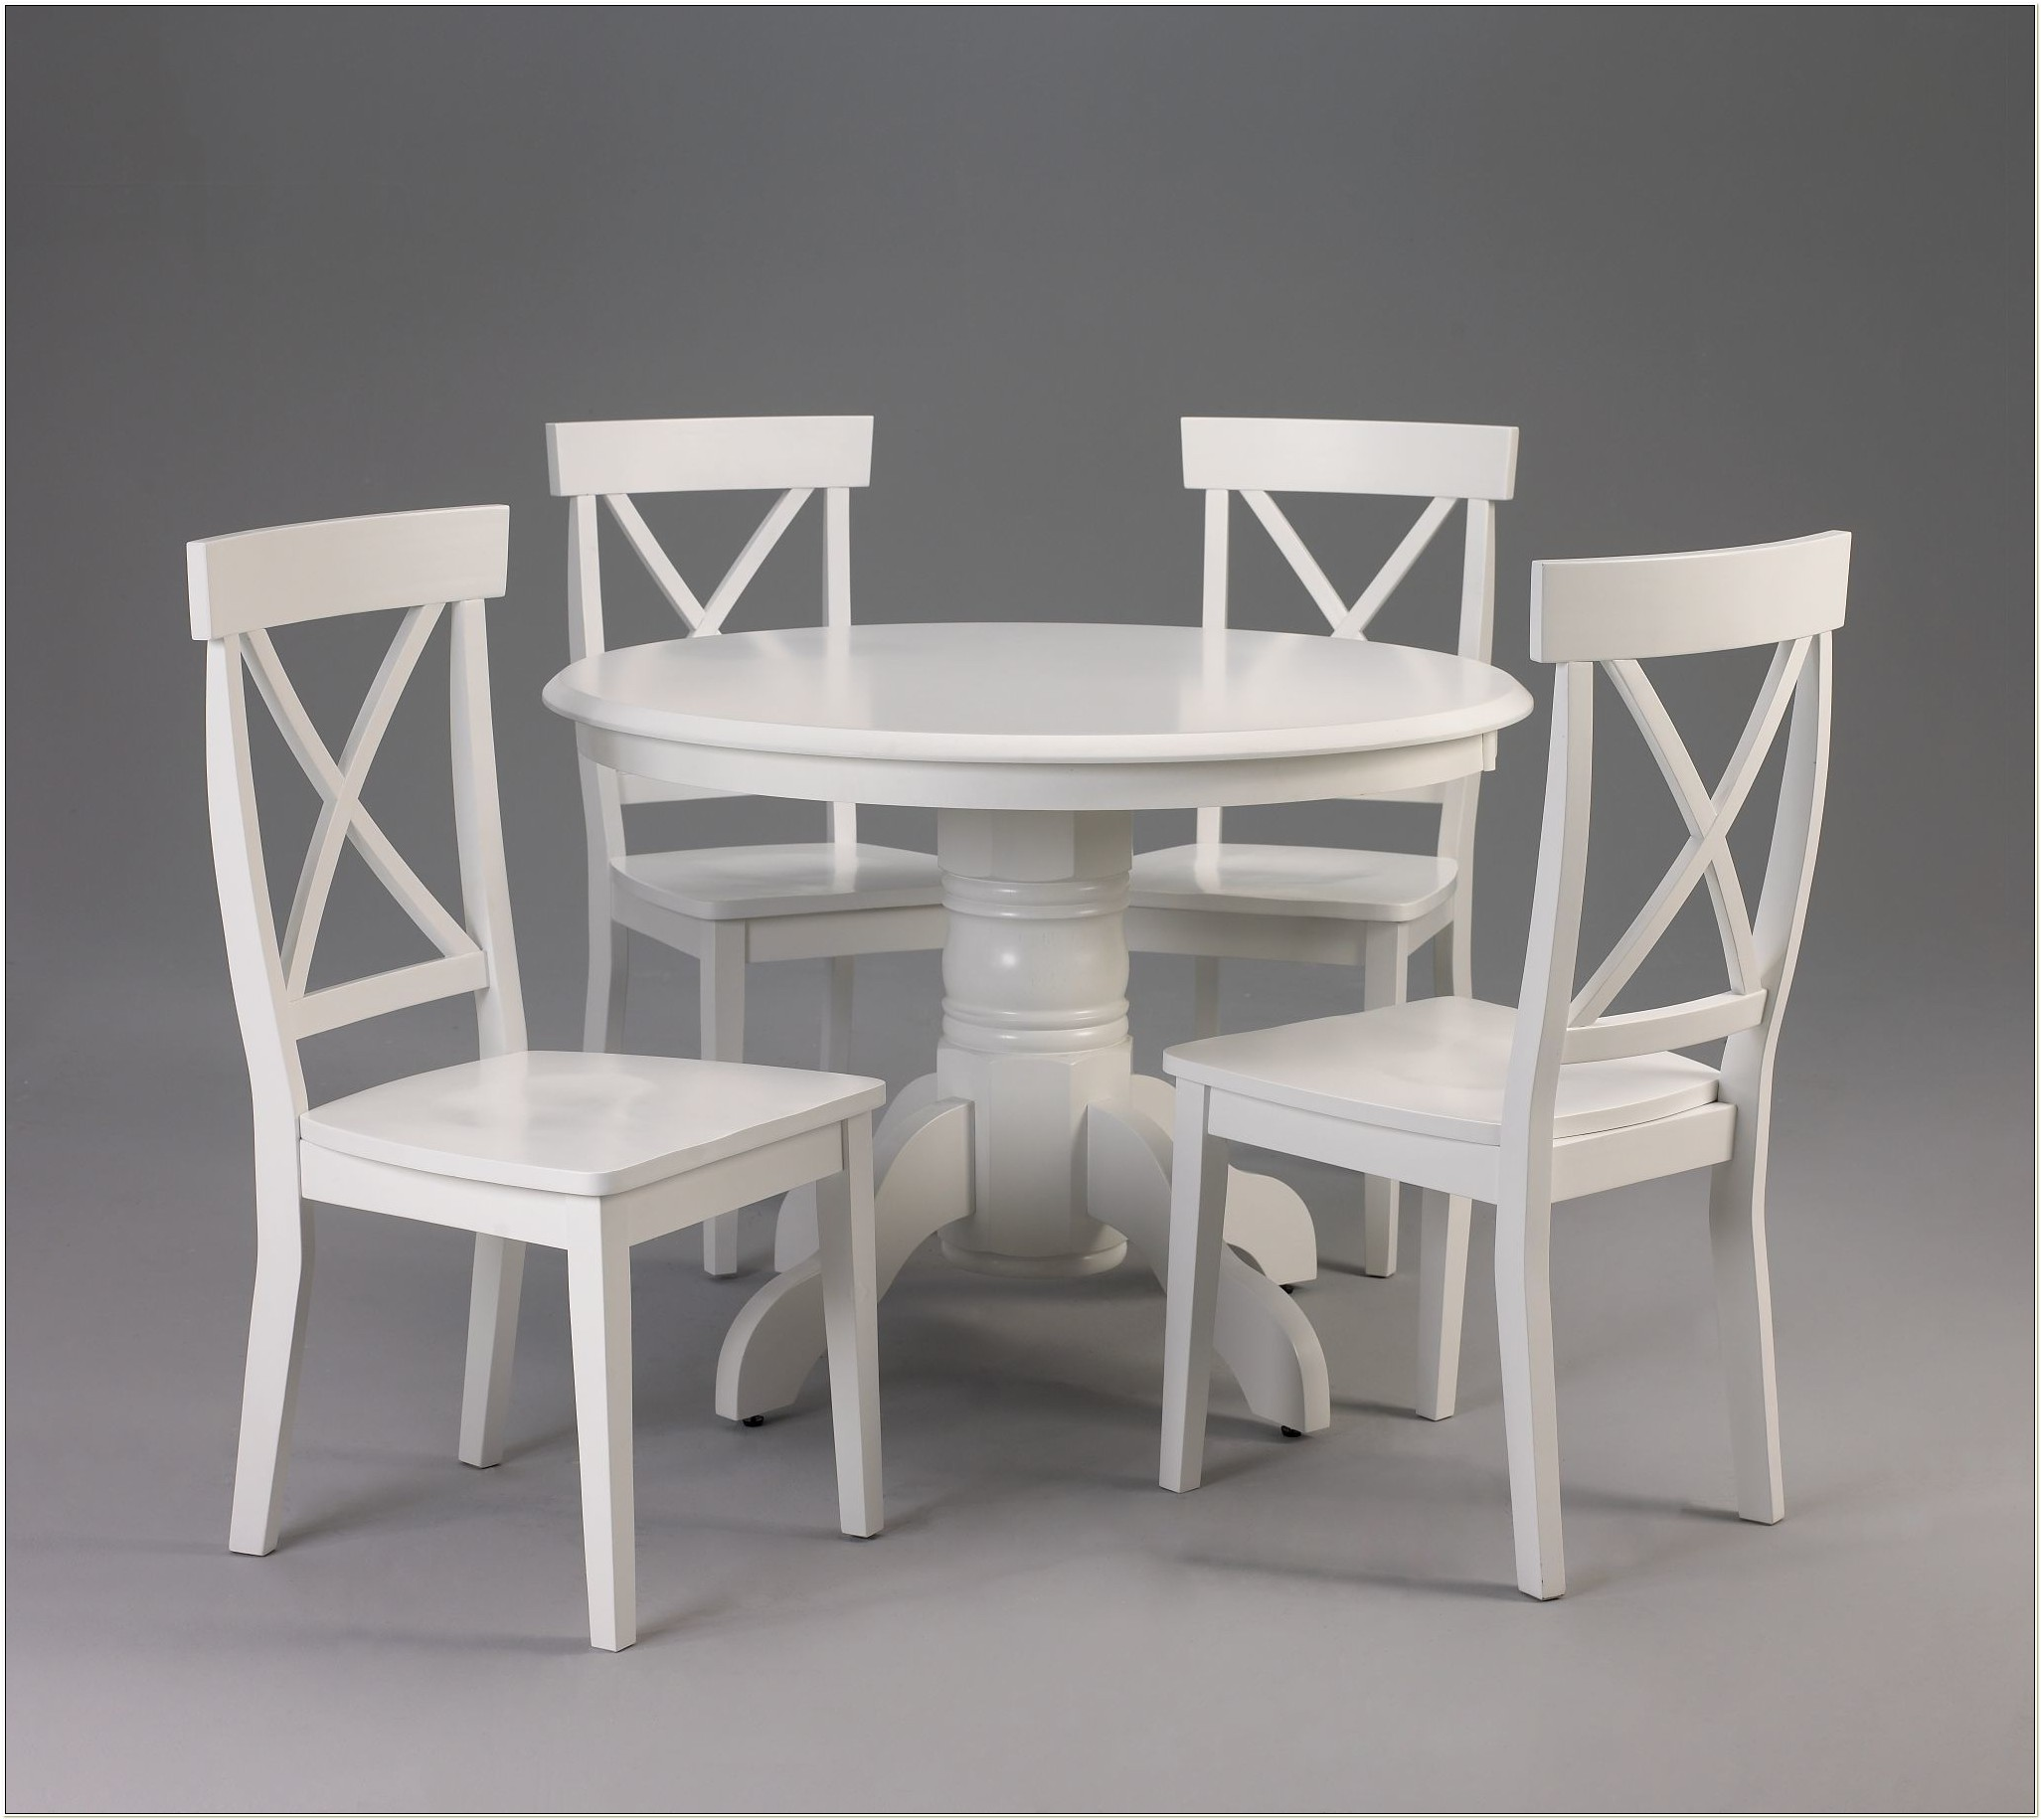 Ikea White Round Table And Chairs